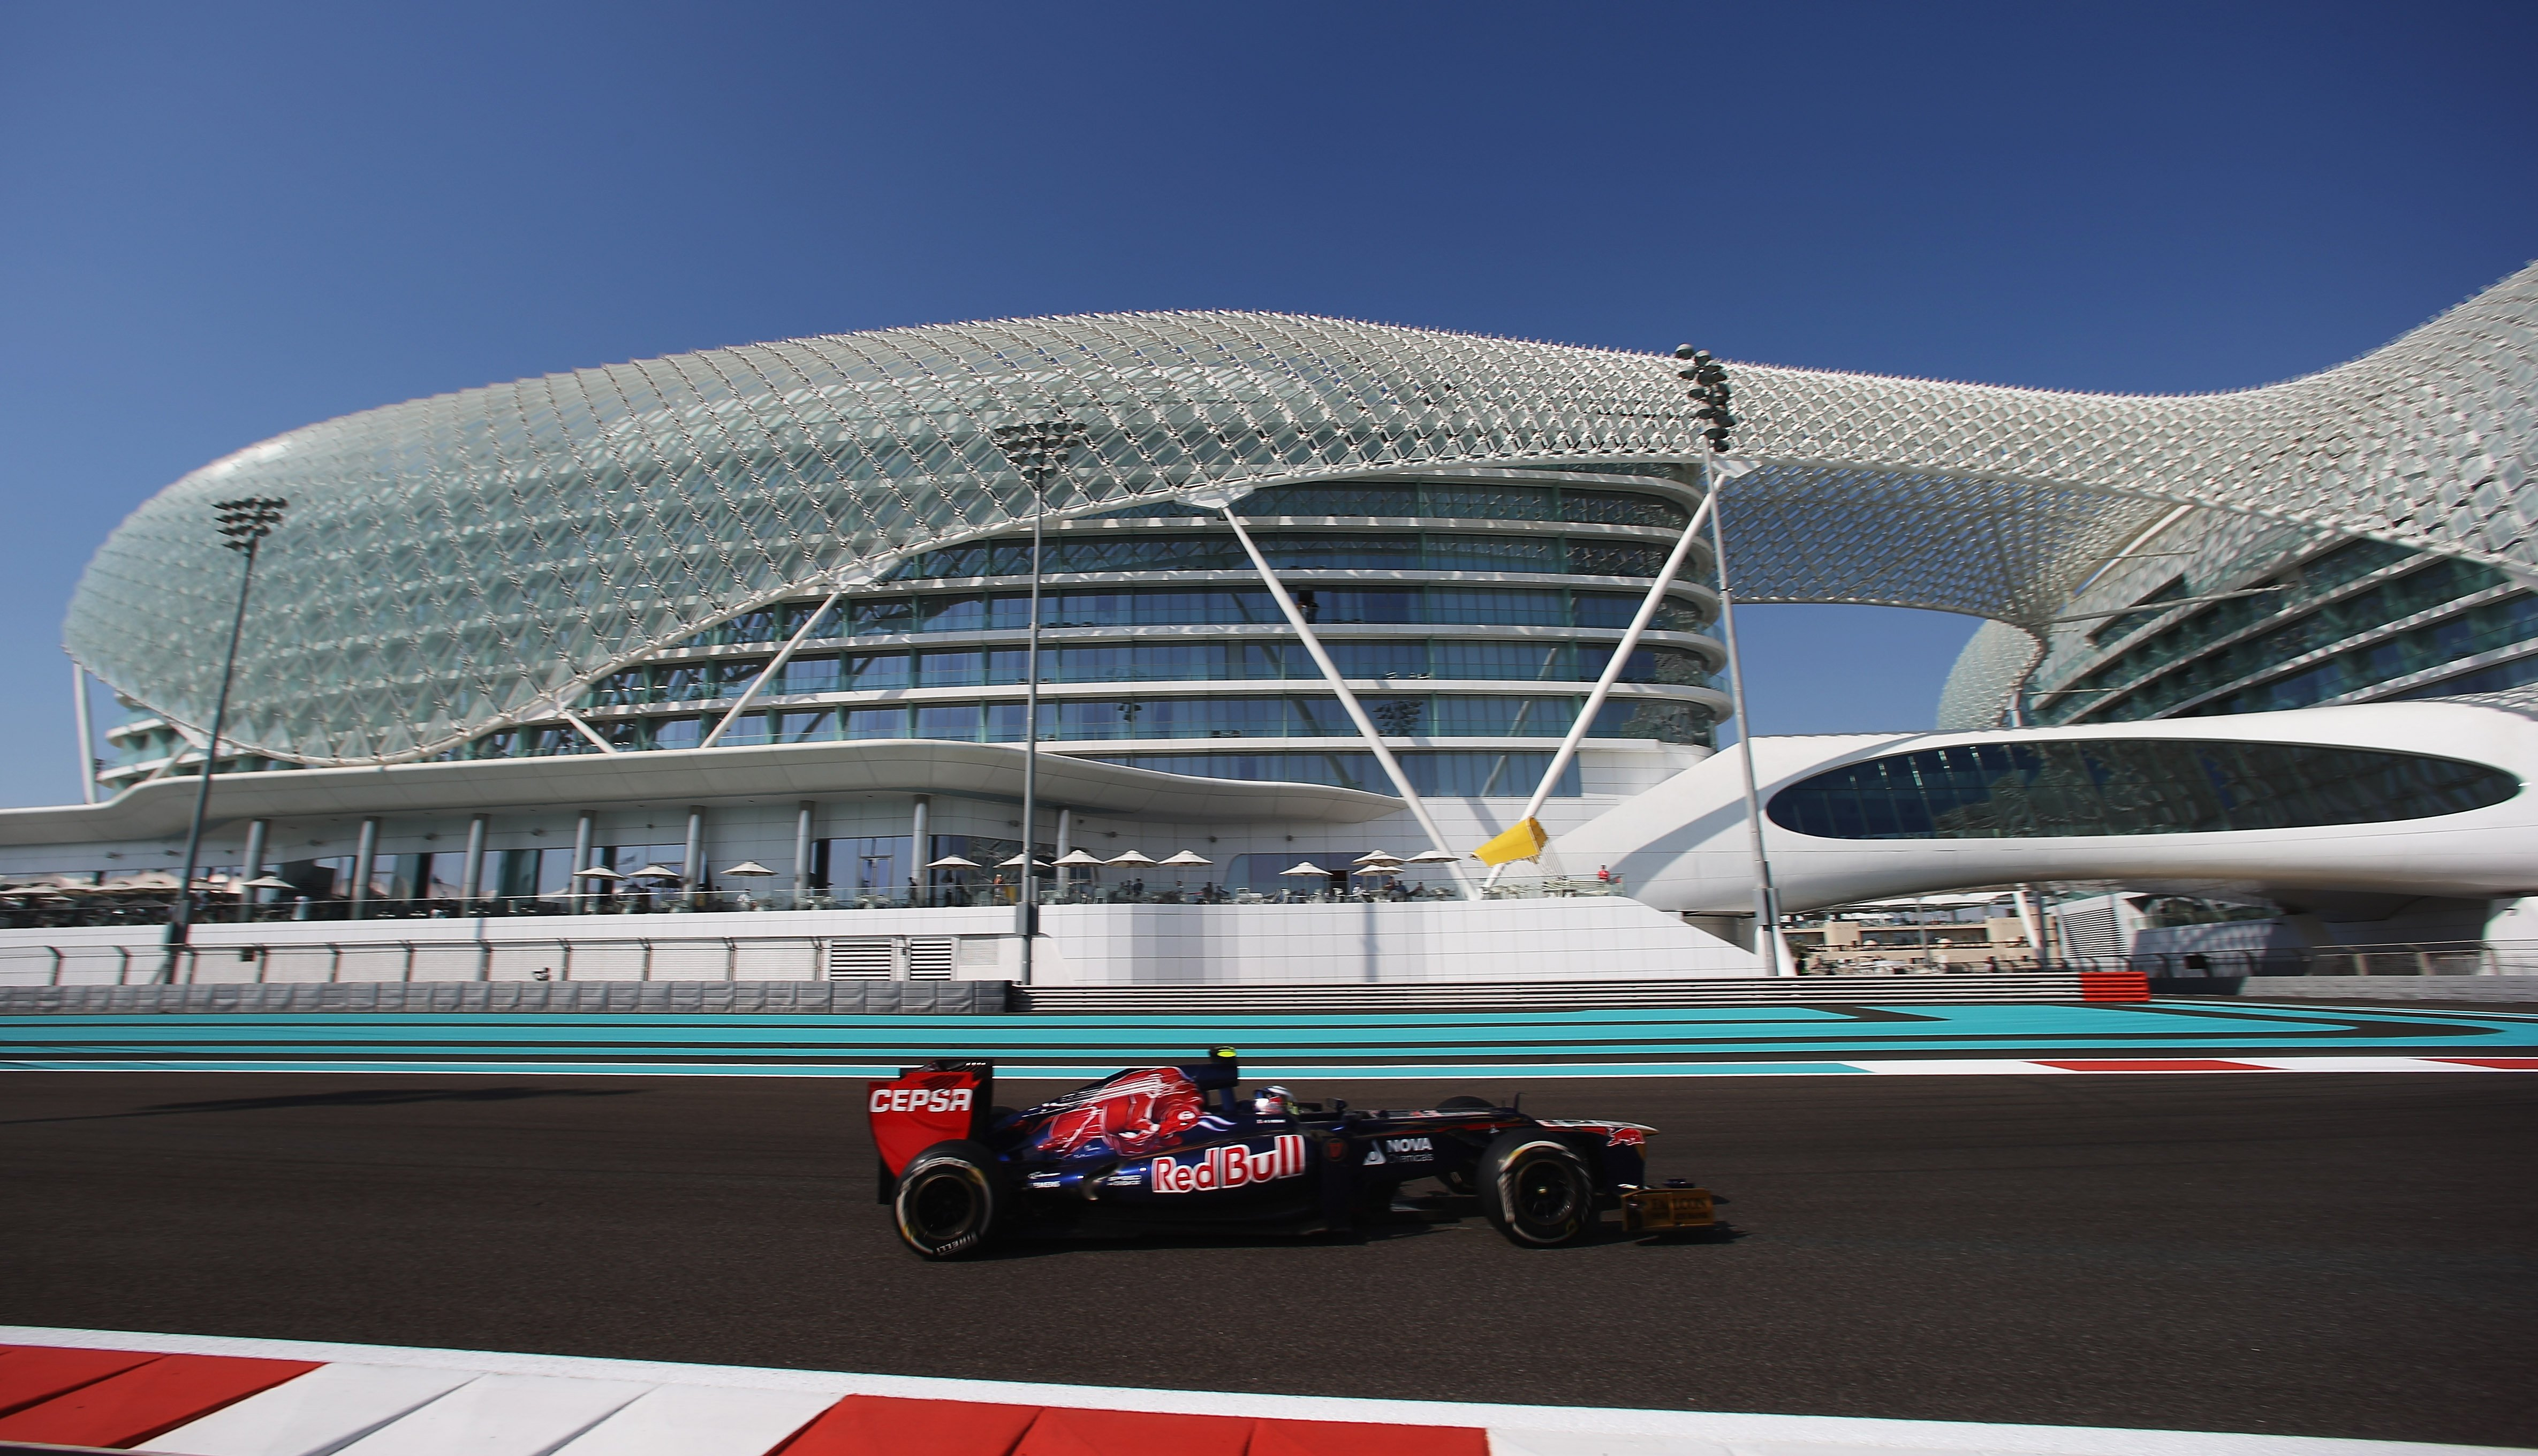 ABU DHABI, UNITED ARAB EMIRATES - NOVEMBER 02:  Jean-Eric Vergne of France and Scuderia Toro Rosso drives during practice for the Abu Dhabi Formula One Grand Prix at the Yas Marina Circuit on November 2, 2012 in Abu Dhabi, United Arab Emirates.  (Photo by Mark Thompson/Getty Images) *** Local Caption *** Jean-Eric Vergne